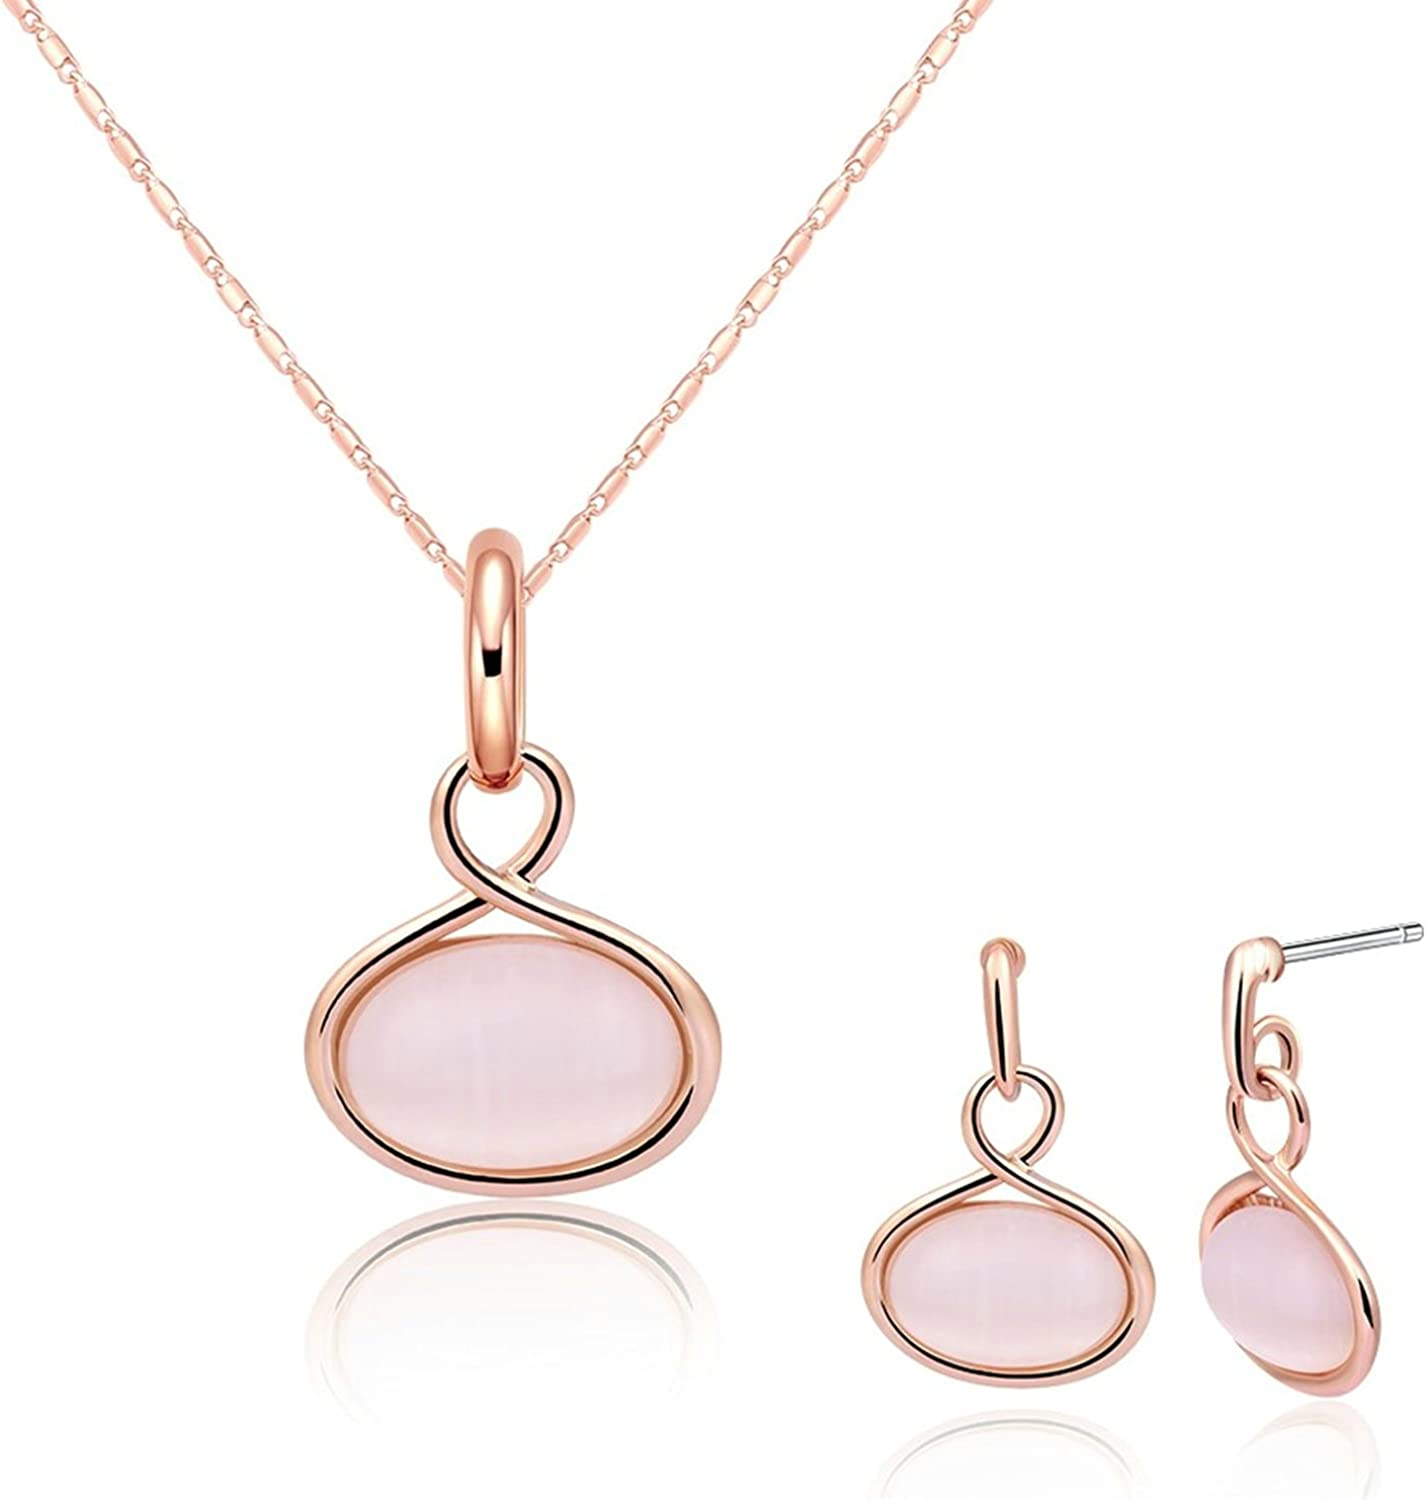 Womens Jewelry Set Gold Plated Necklace and Earrings Set Pink Infinity Oval Stone Wedding Gift Adisaer